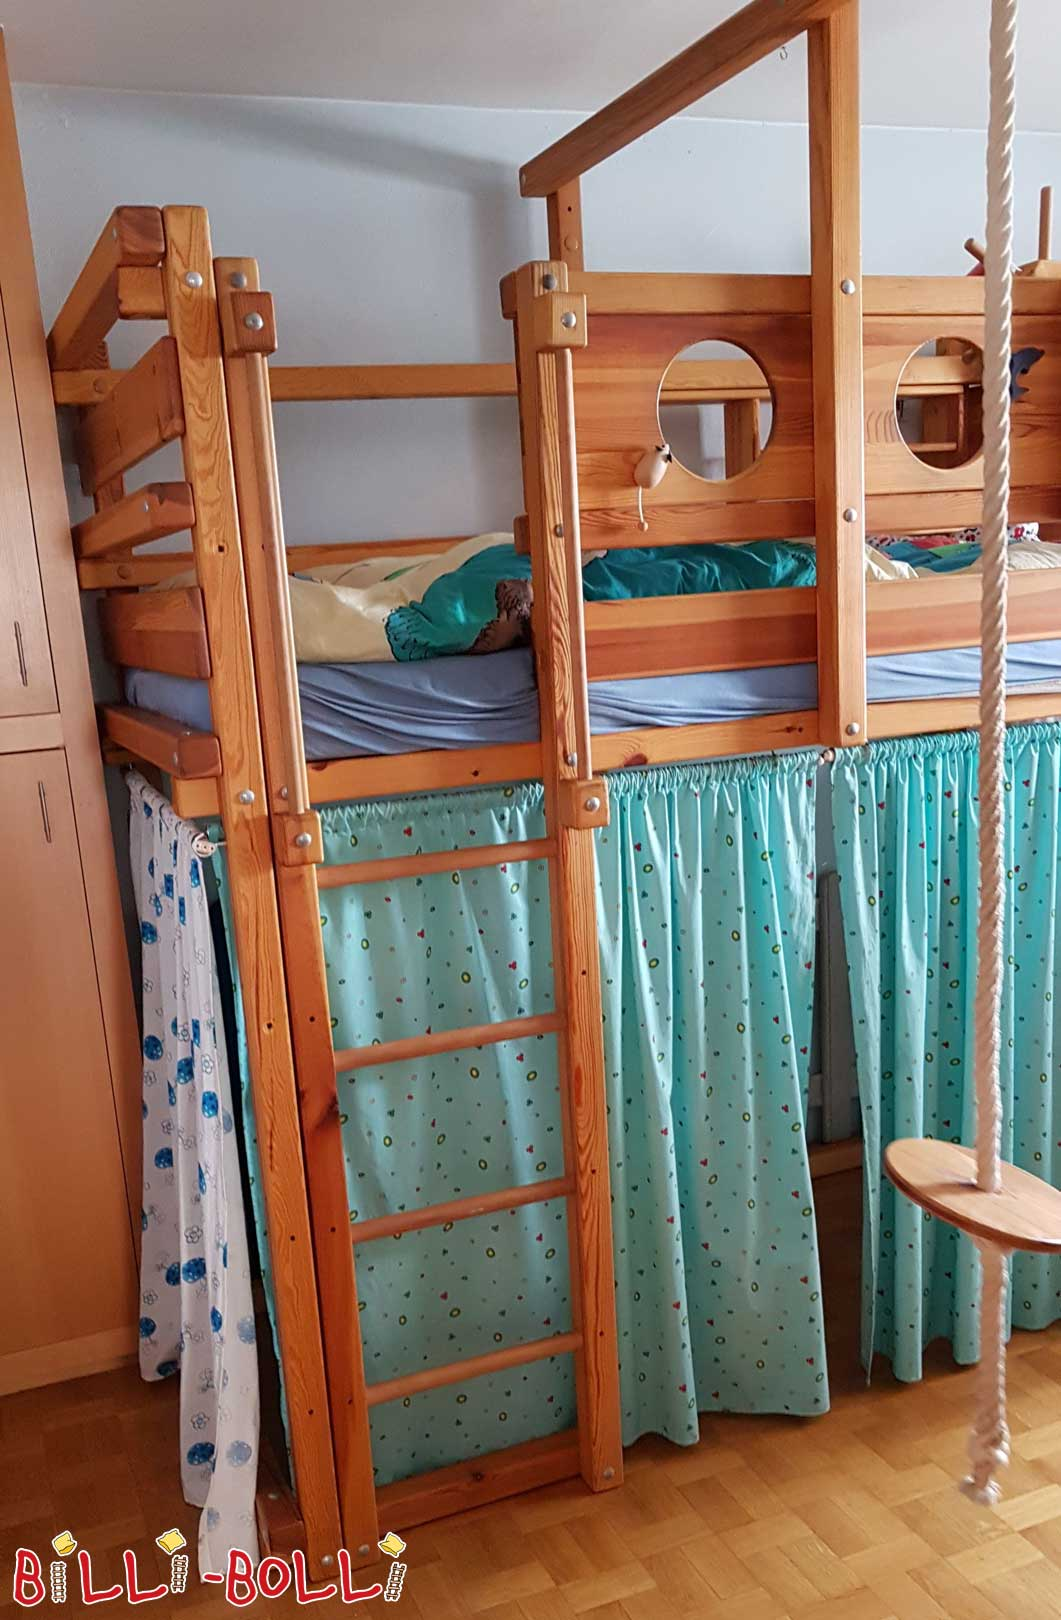 Colluming high bed including conversion sets (second hand loft bed)